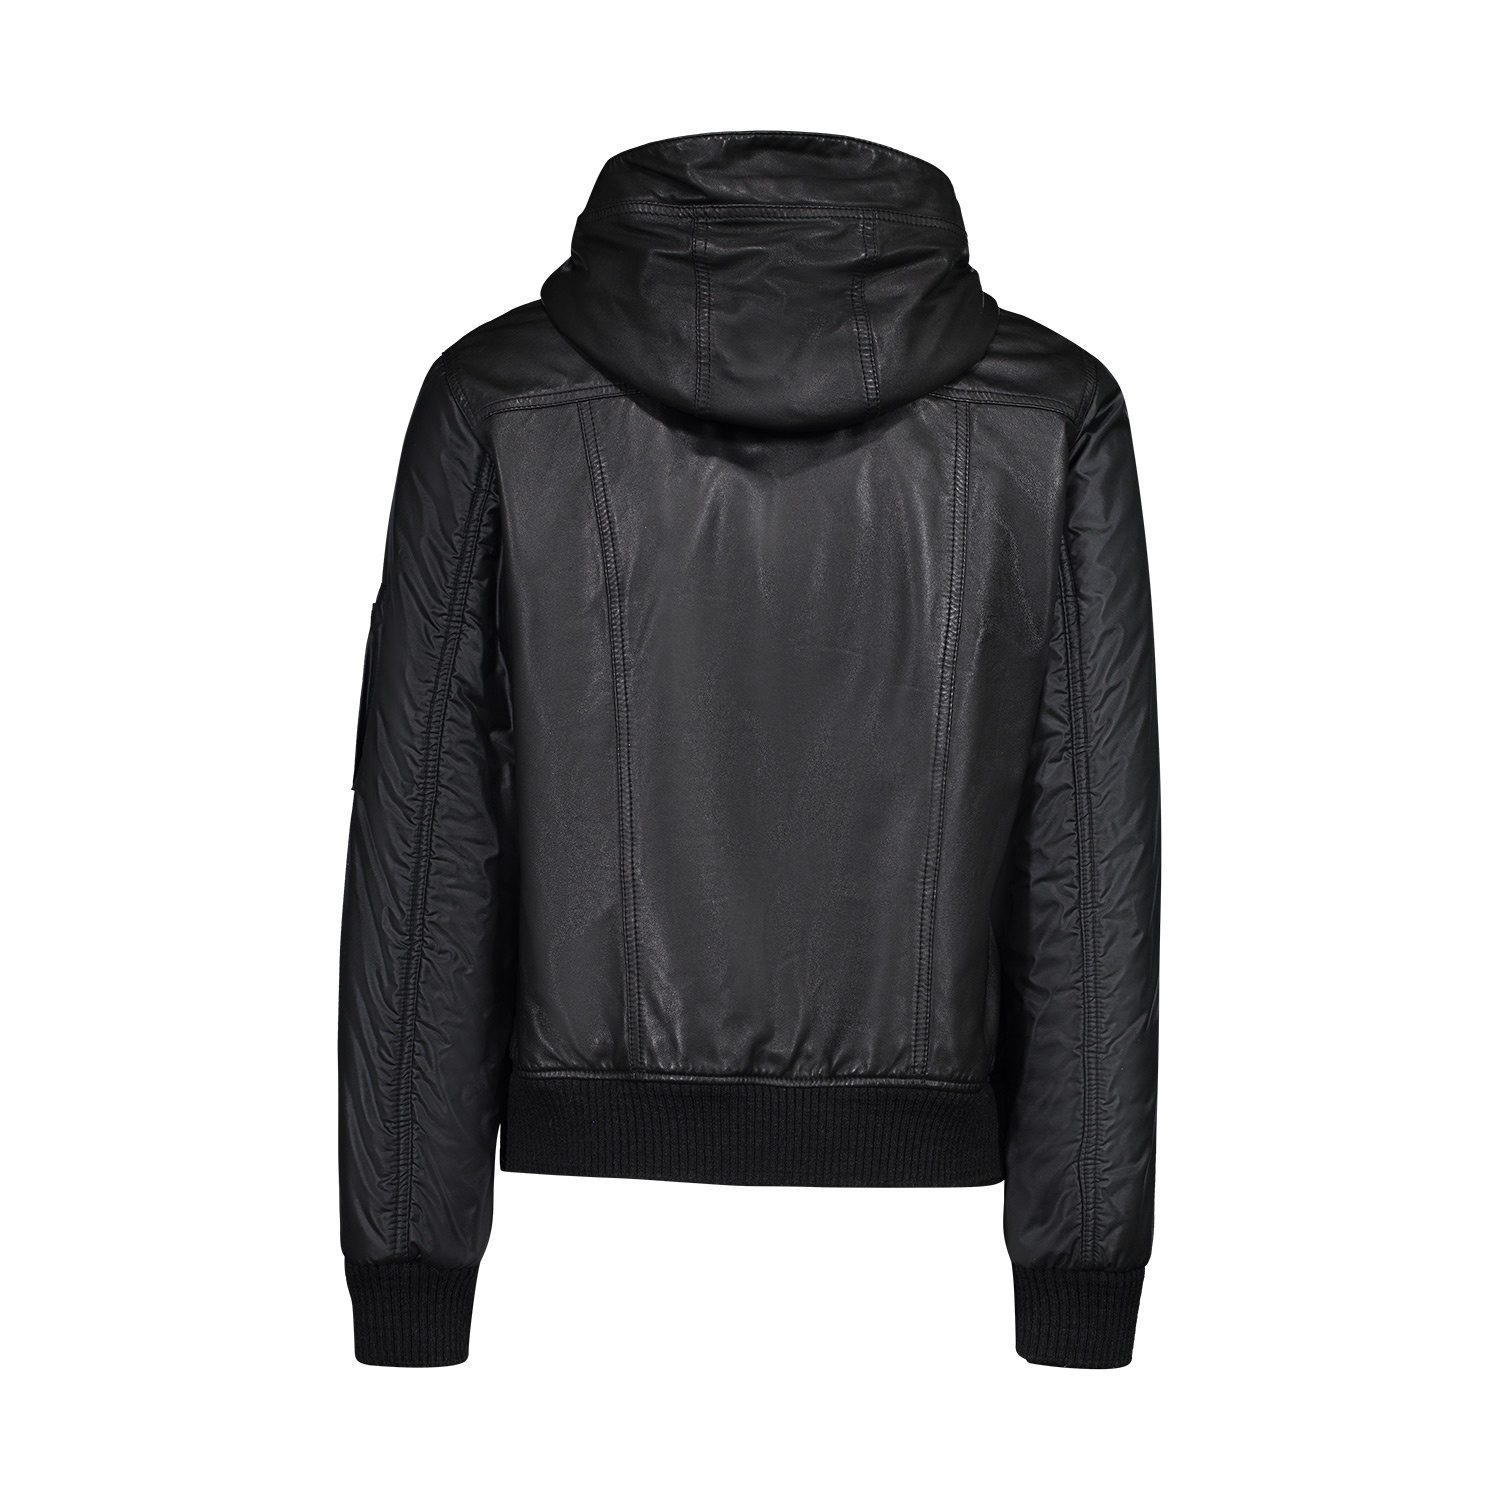 Dolce & Gabbana Dolce & Gabbana Black Leather Hoodie Jacket with Nylon Sleeves